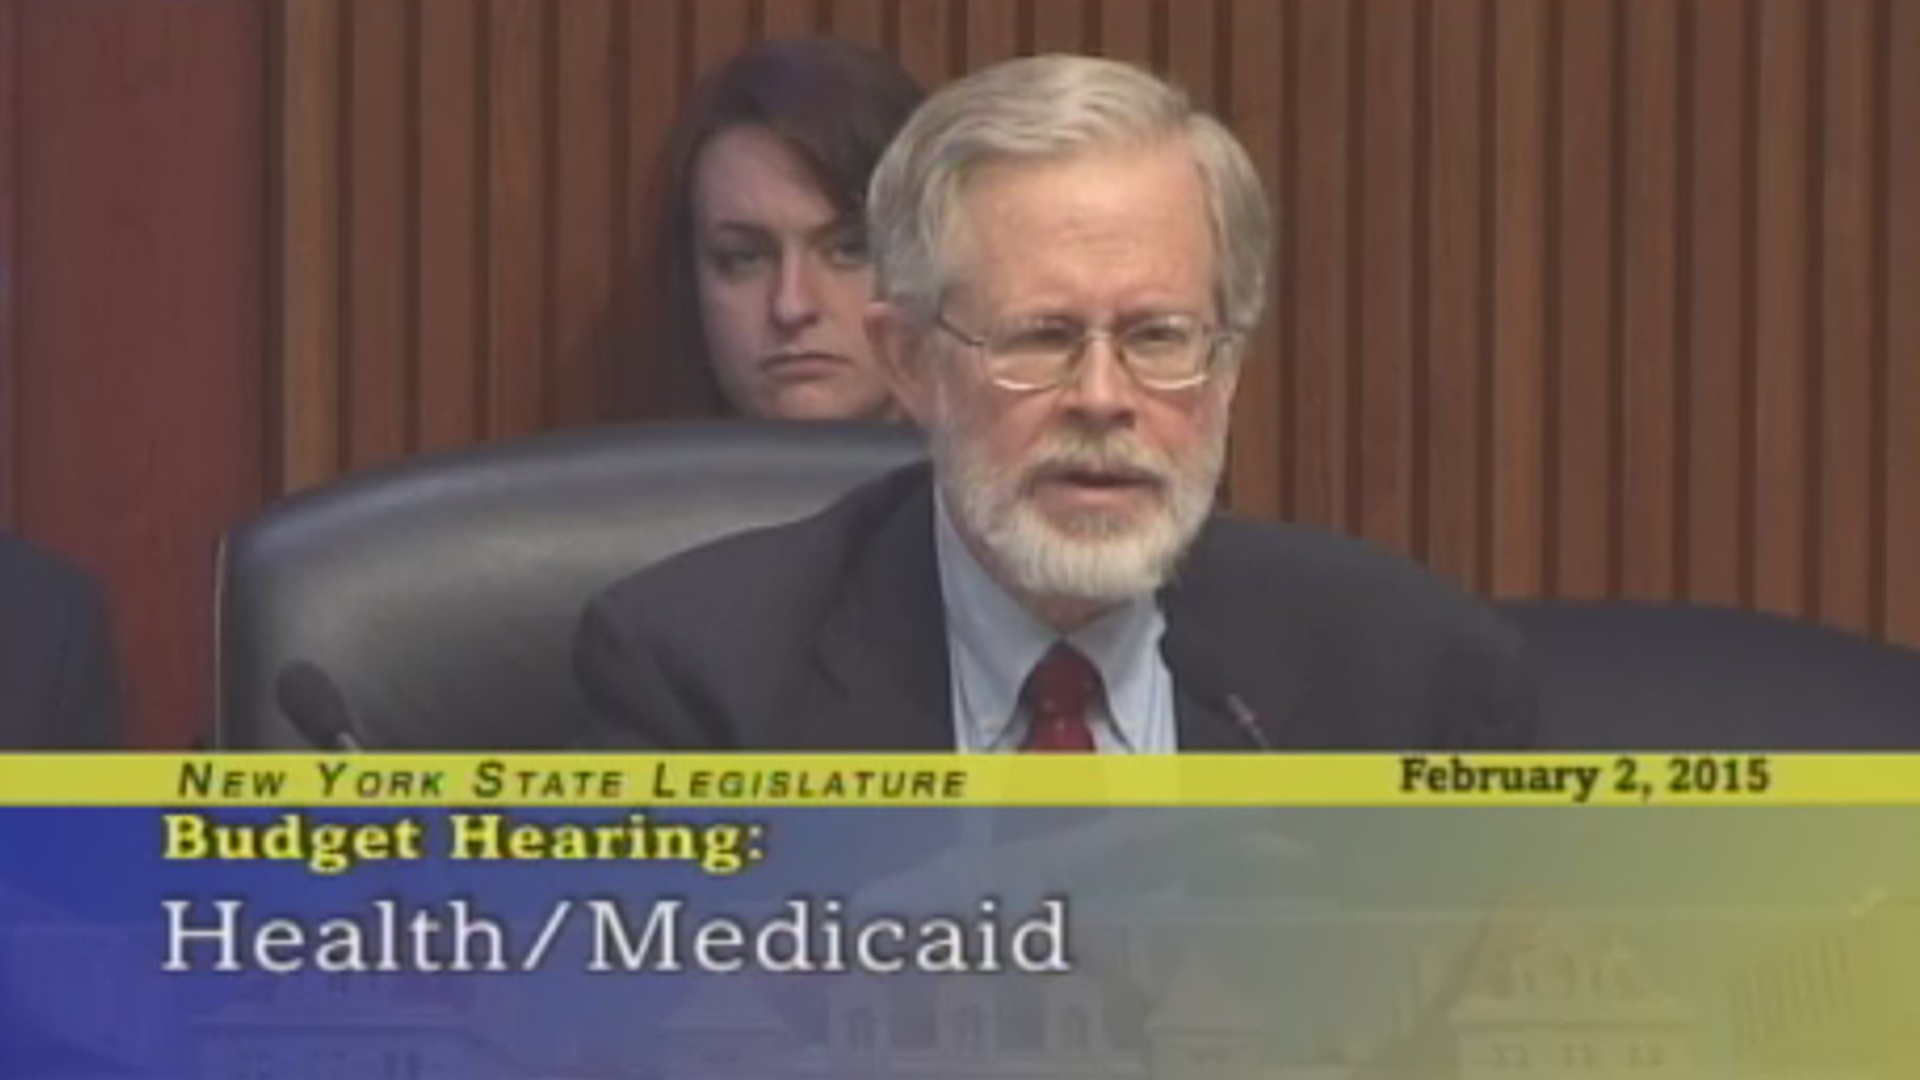 Health/Medicaid Budget Hearing #1